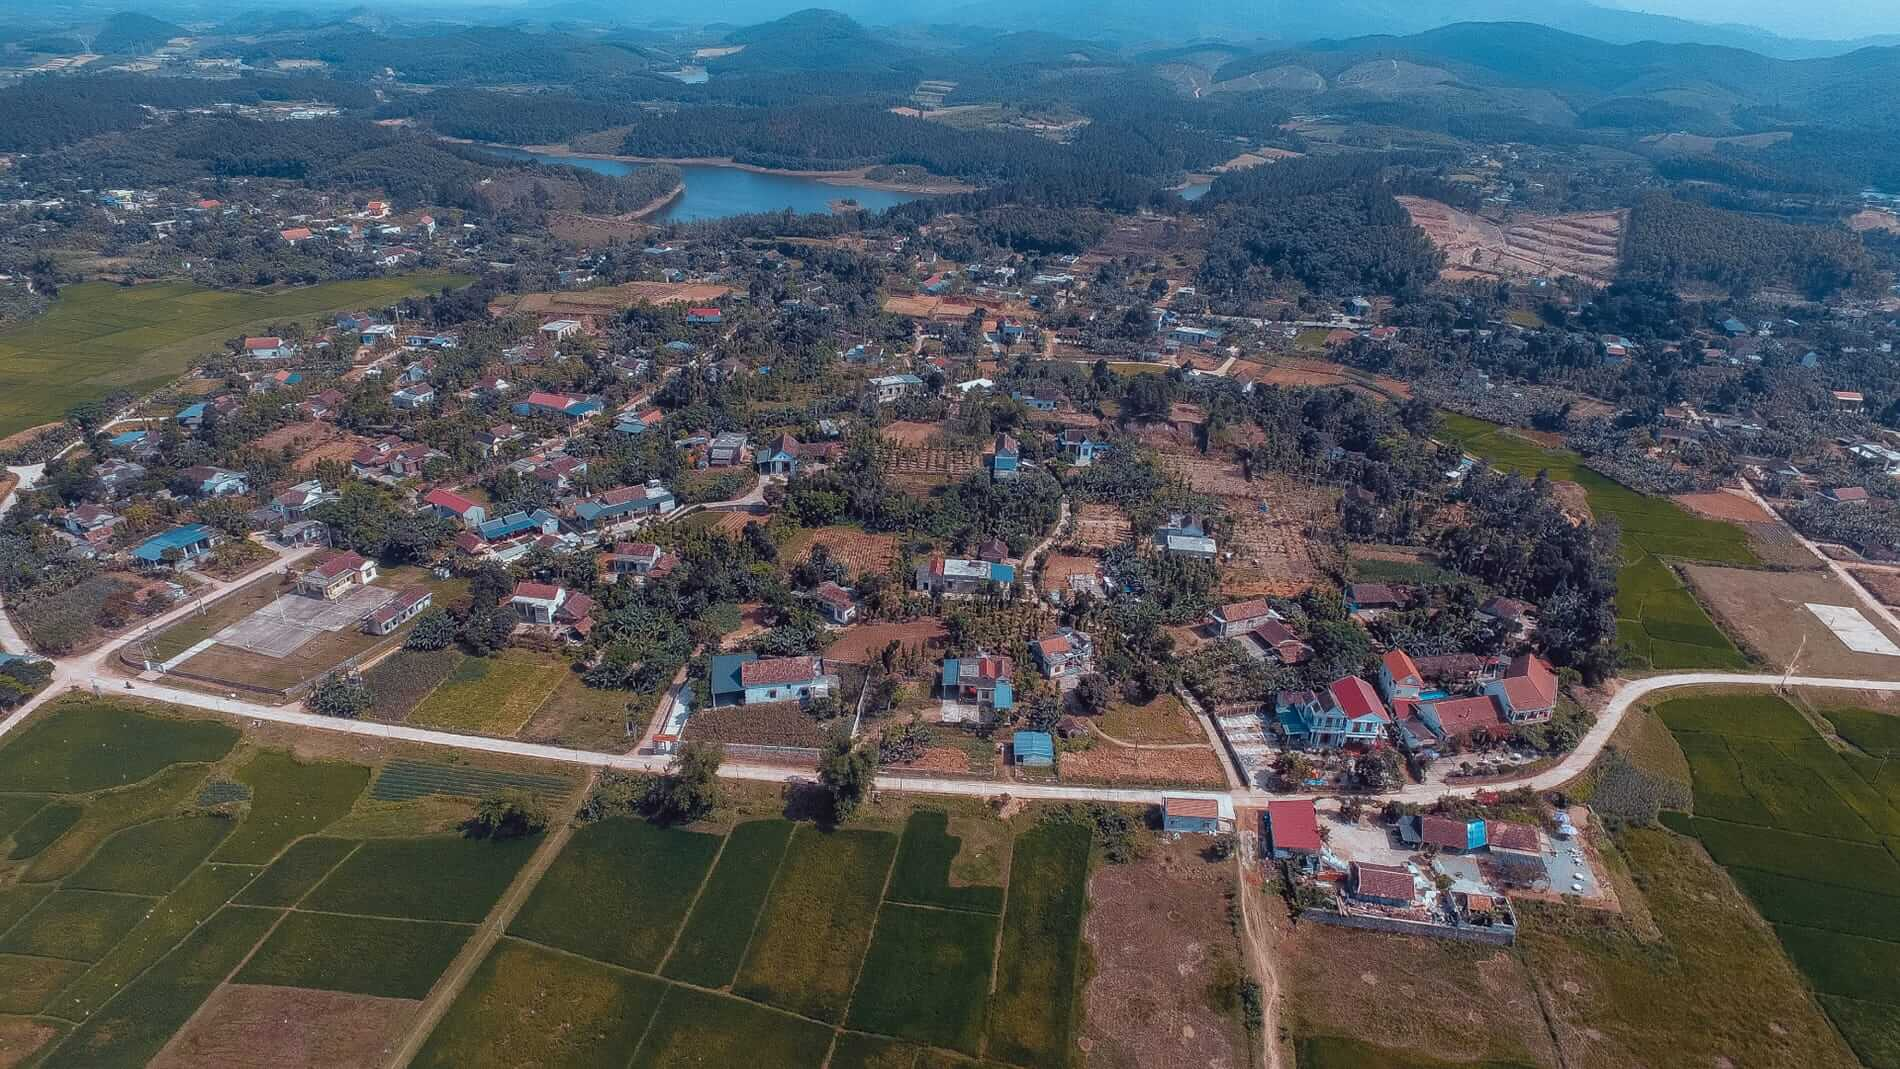 aerial view of Phong Nha village